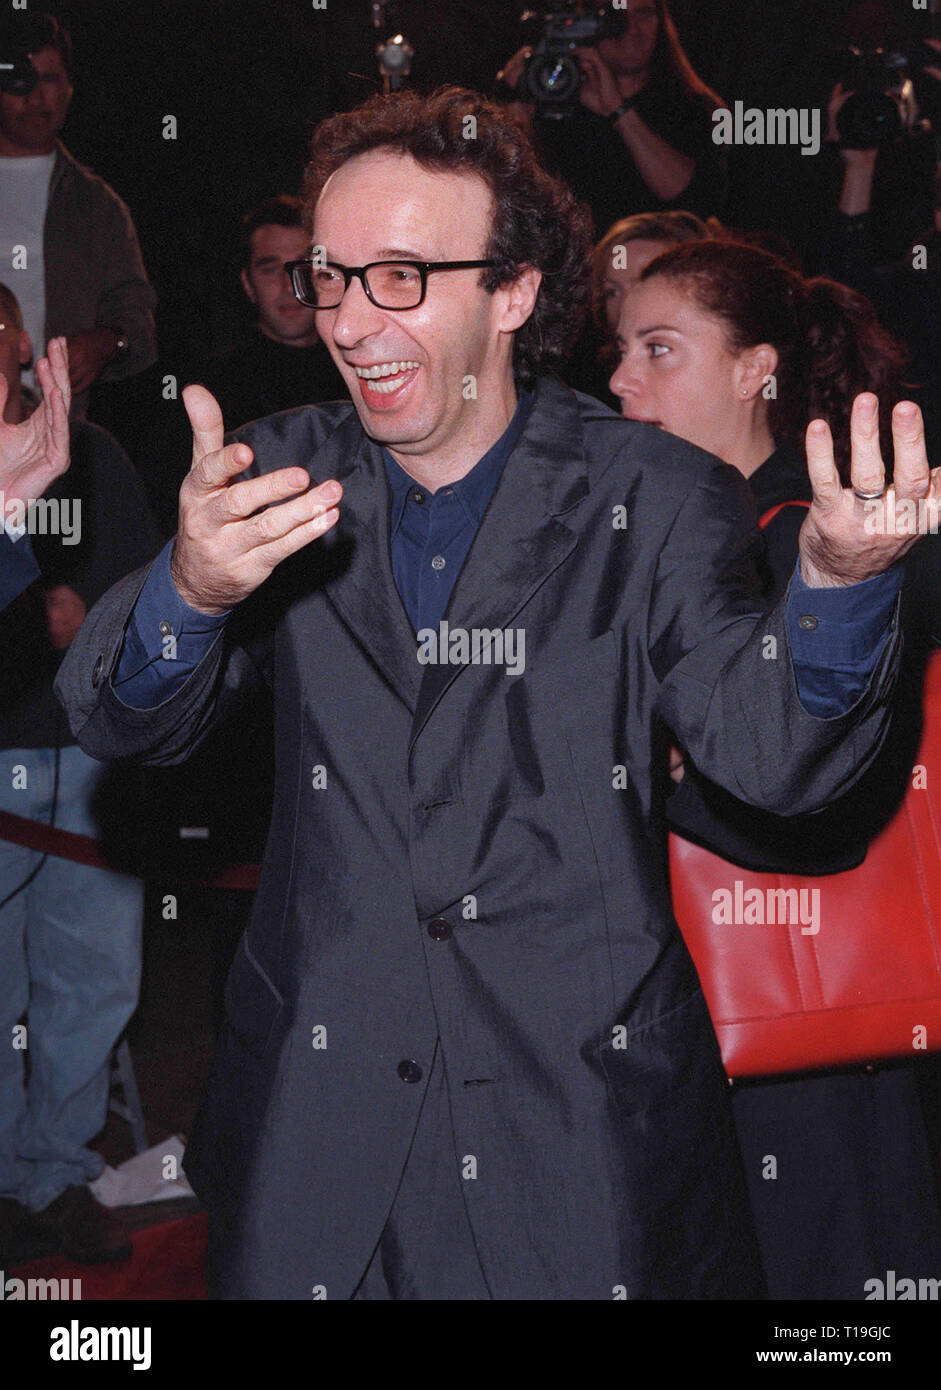 Los Angeles Ca October 22 1998 Italian Actor Director Roberto Benigni At The Hollywood Premiere Of